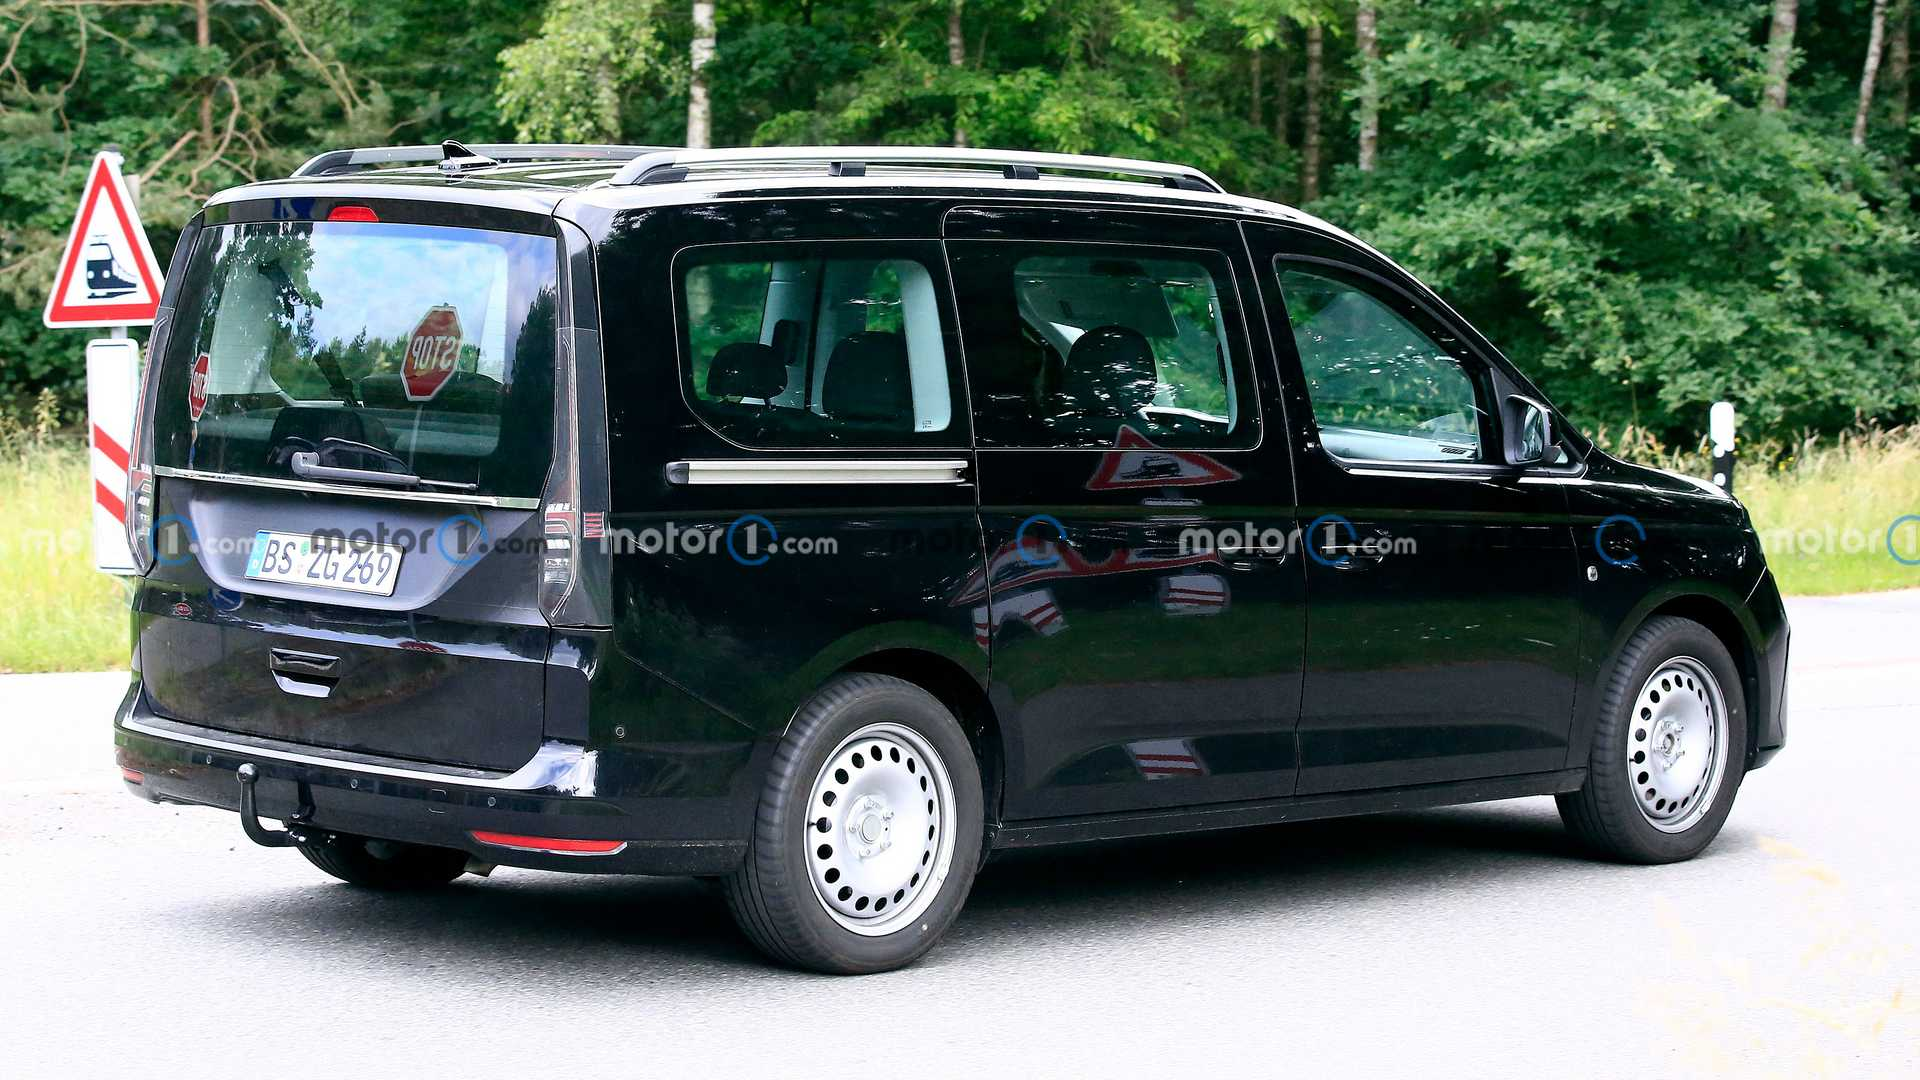 https://cdn.motor1.com/images/mgl/nGOBl/s6/new-ford-tourneo-connect-first-spy-photo-rear-three-quarters.jpg